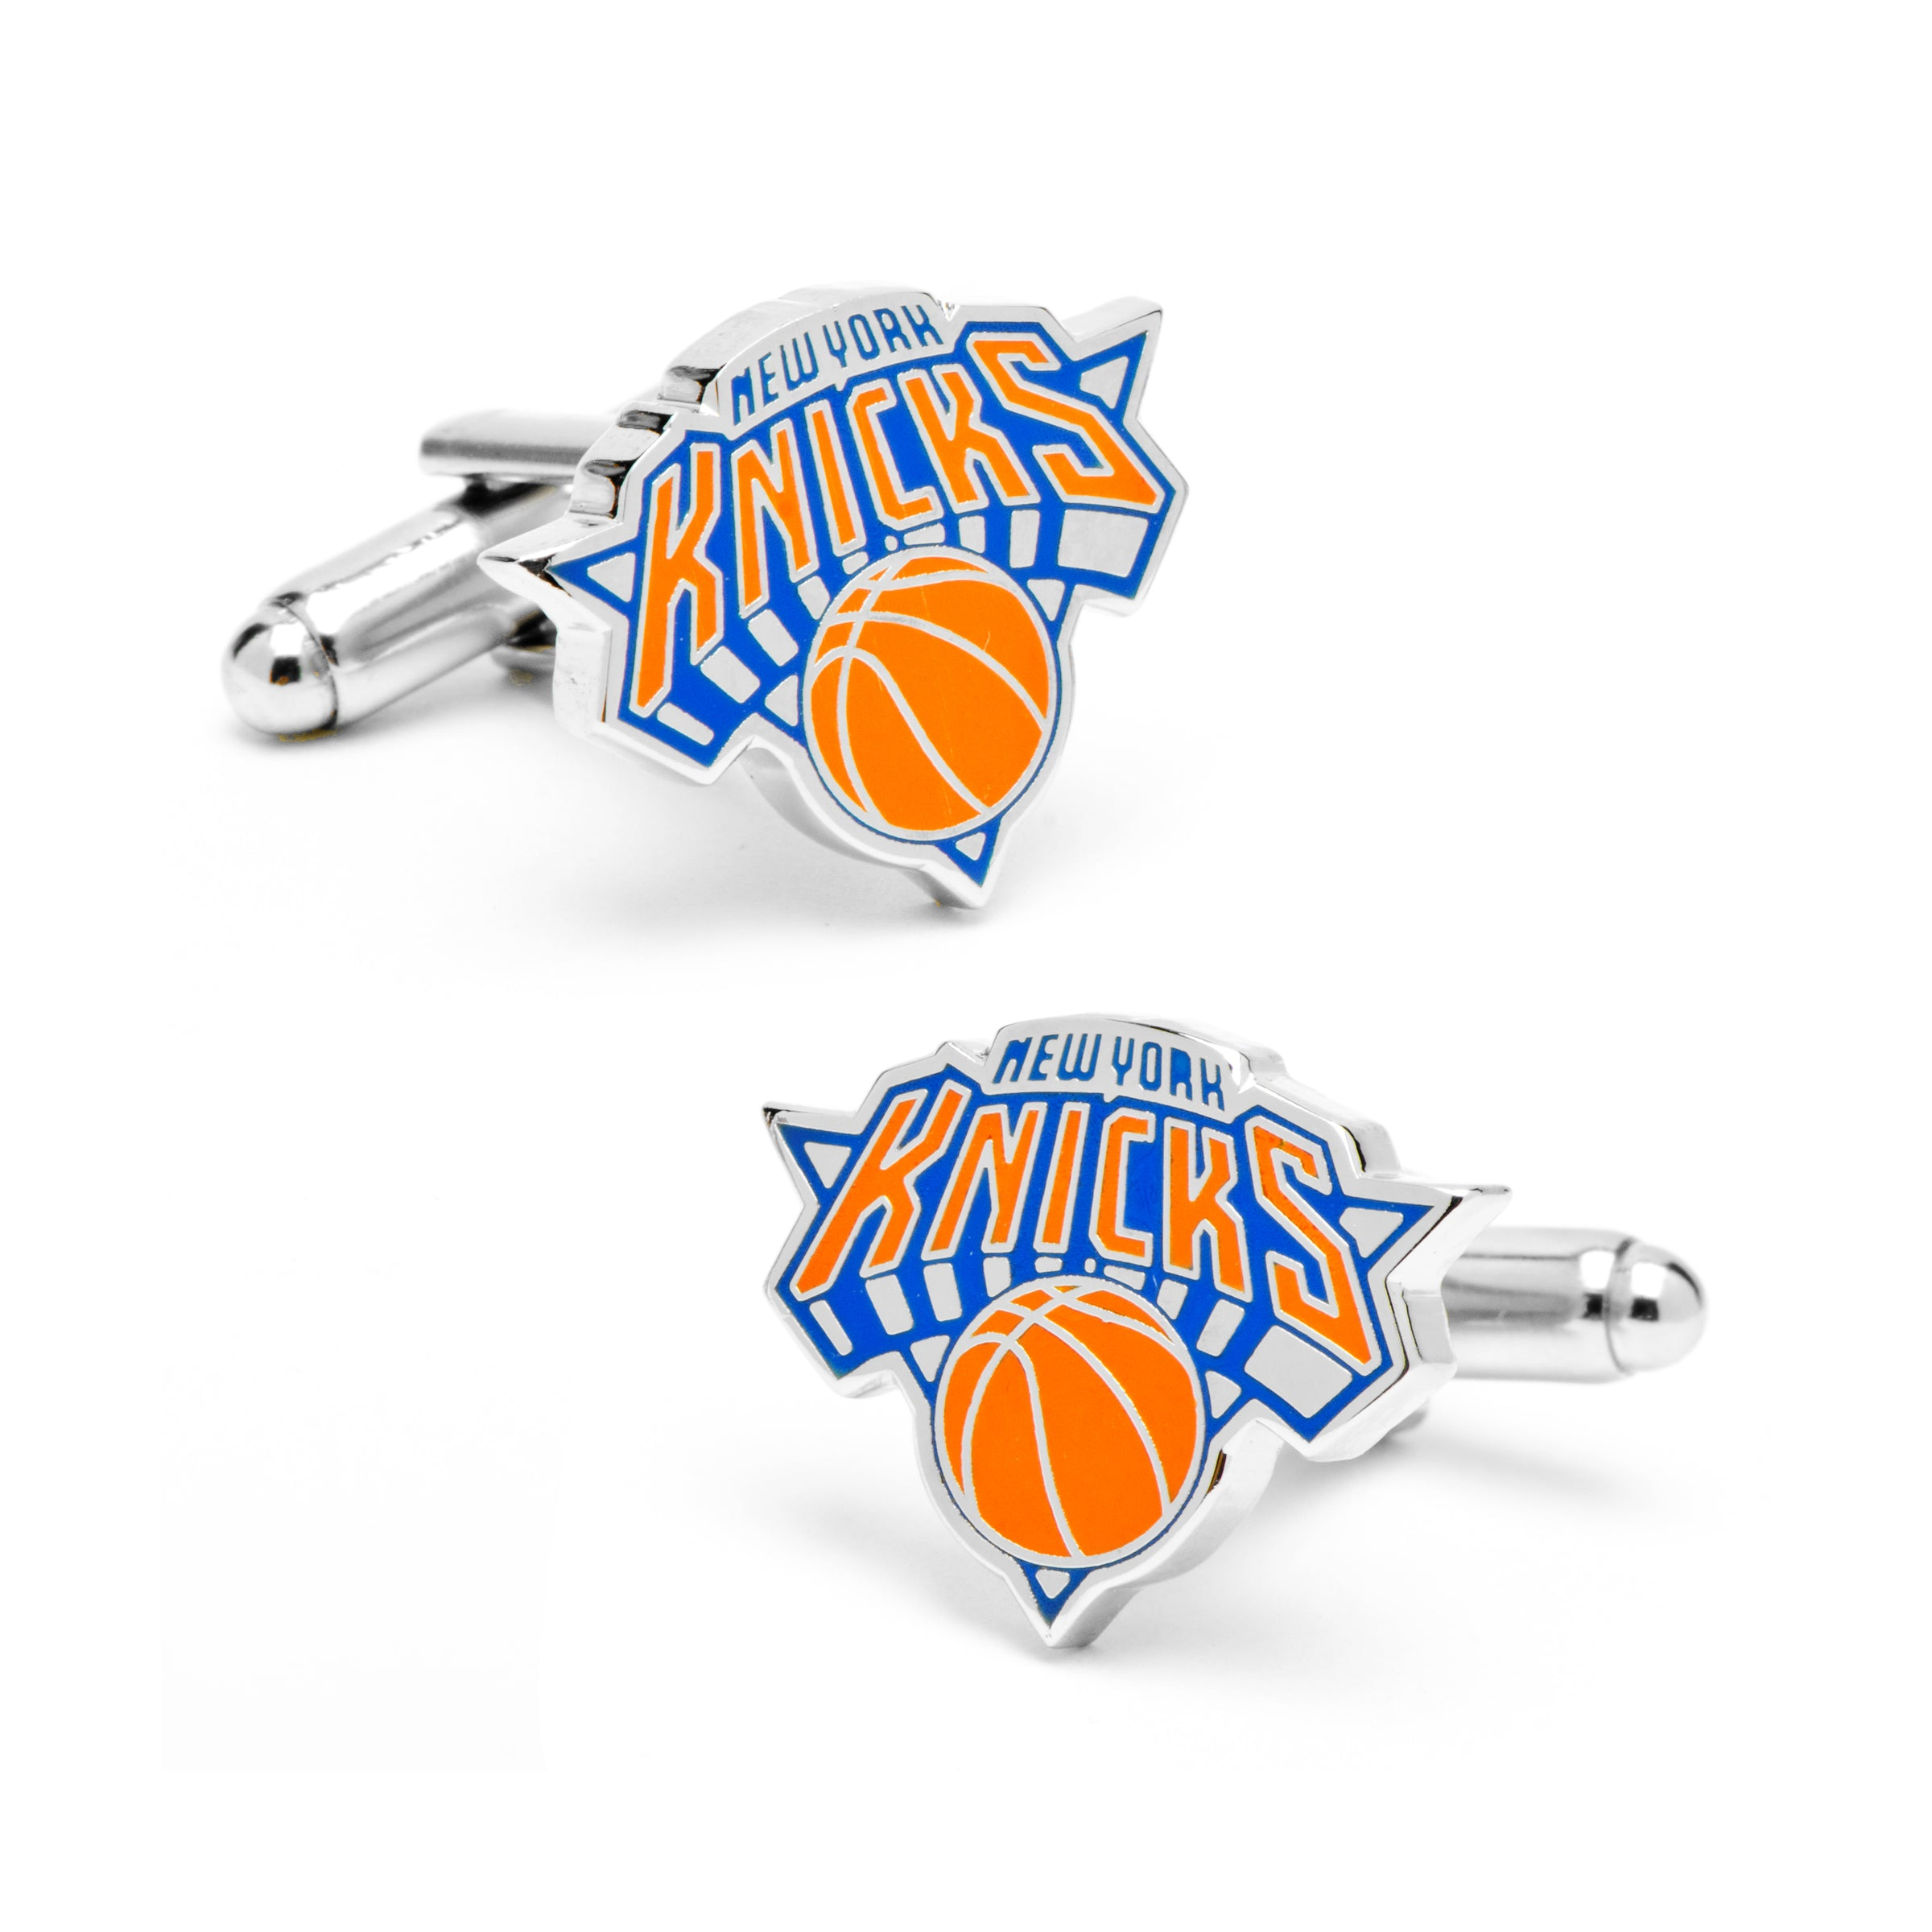 New York Knicks Cufflinks